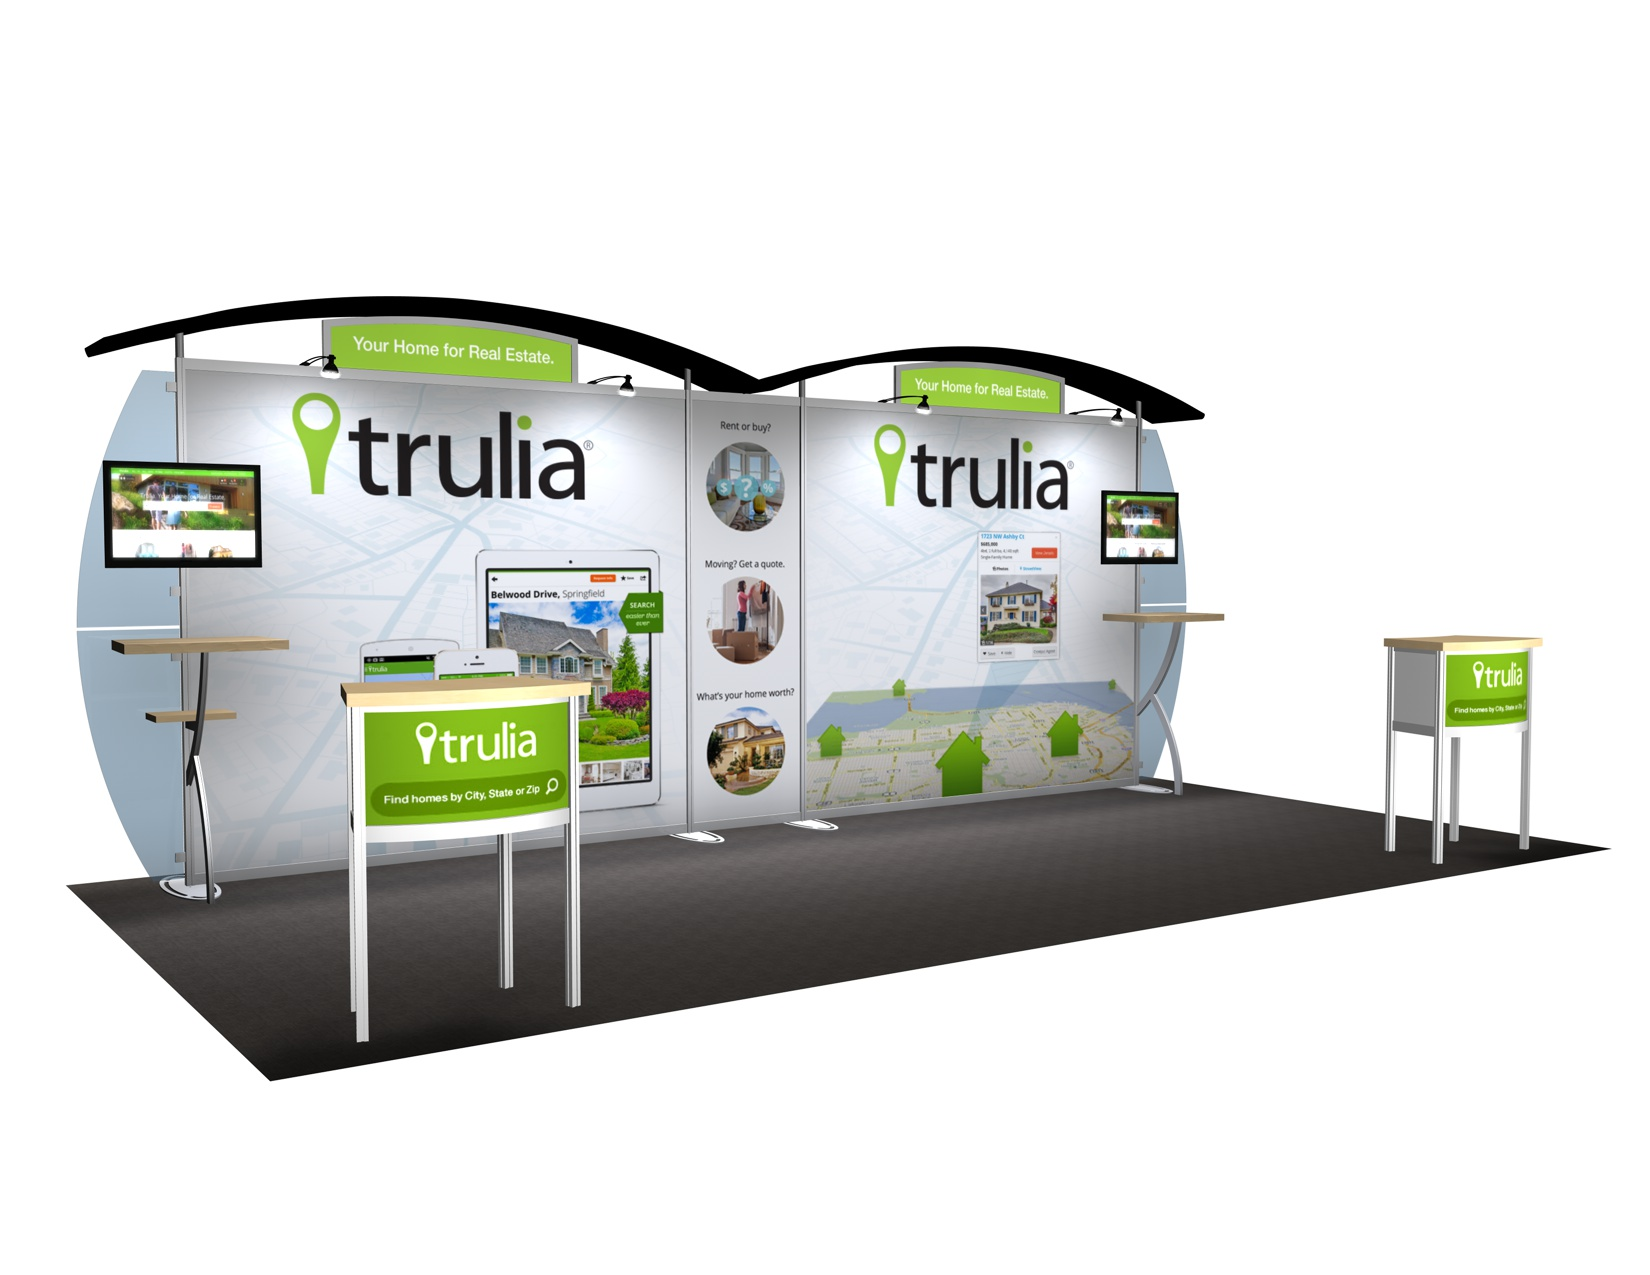 Exhibition Booth Accessories : Exhibit design search vk sacagawea ft